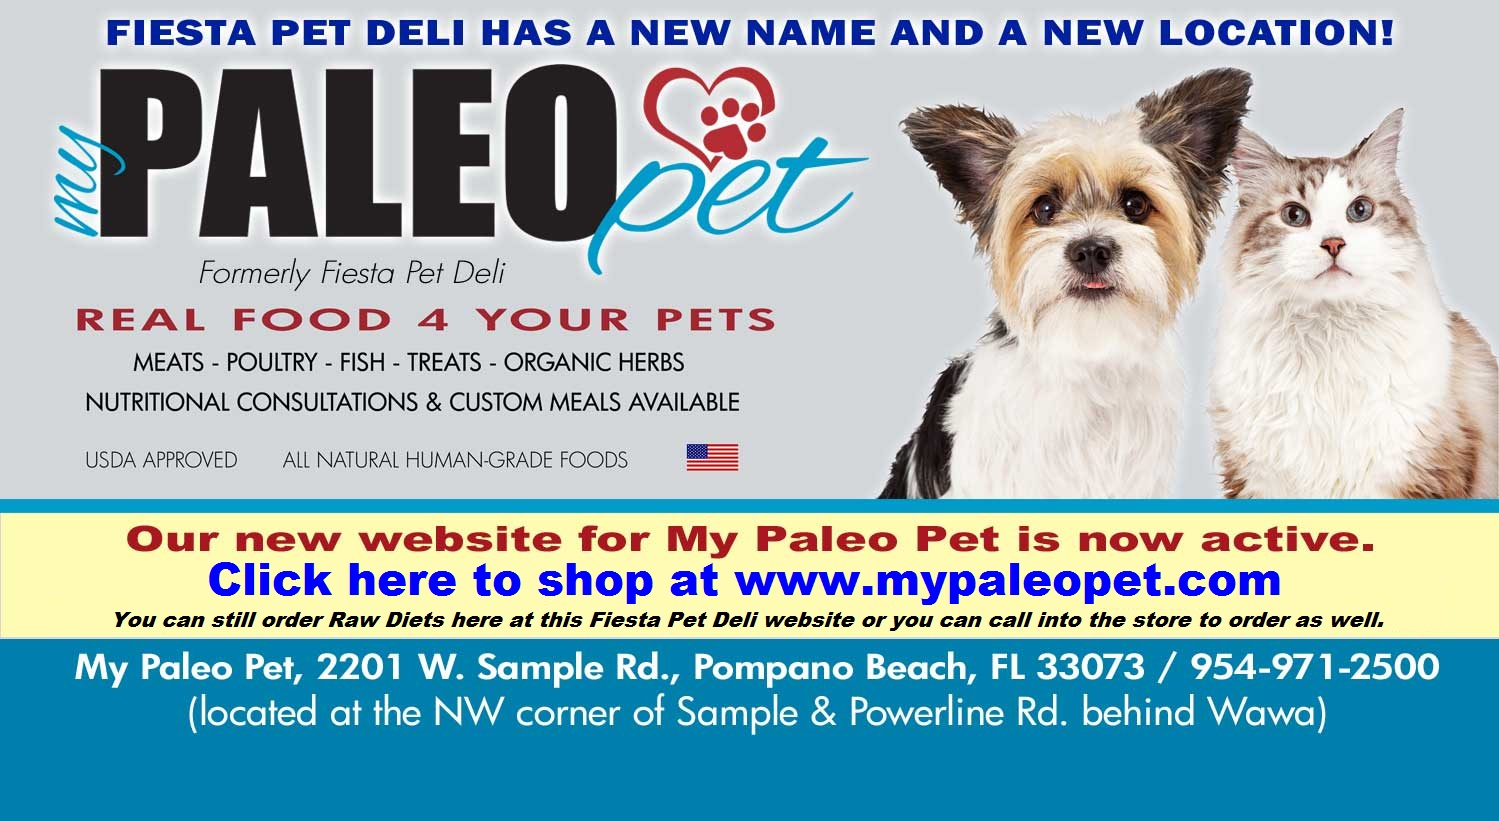 VISIT OUR NEW LOCATION: 2201 W. Sample Rd., Bldg. 8, Suite 5A, Pompano Beach, FL  /  954-971-2500 / www.mypaleopet.com